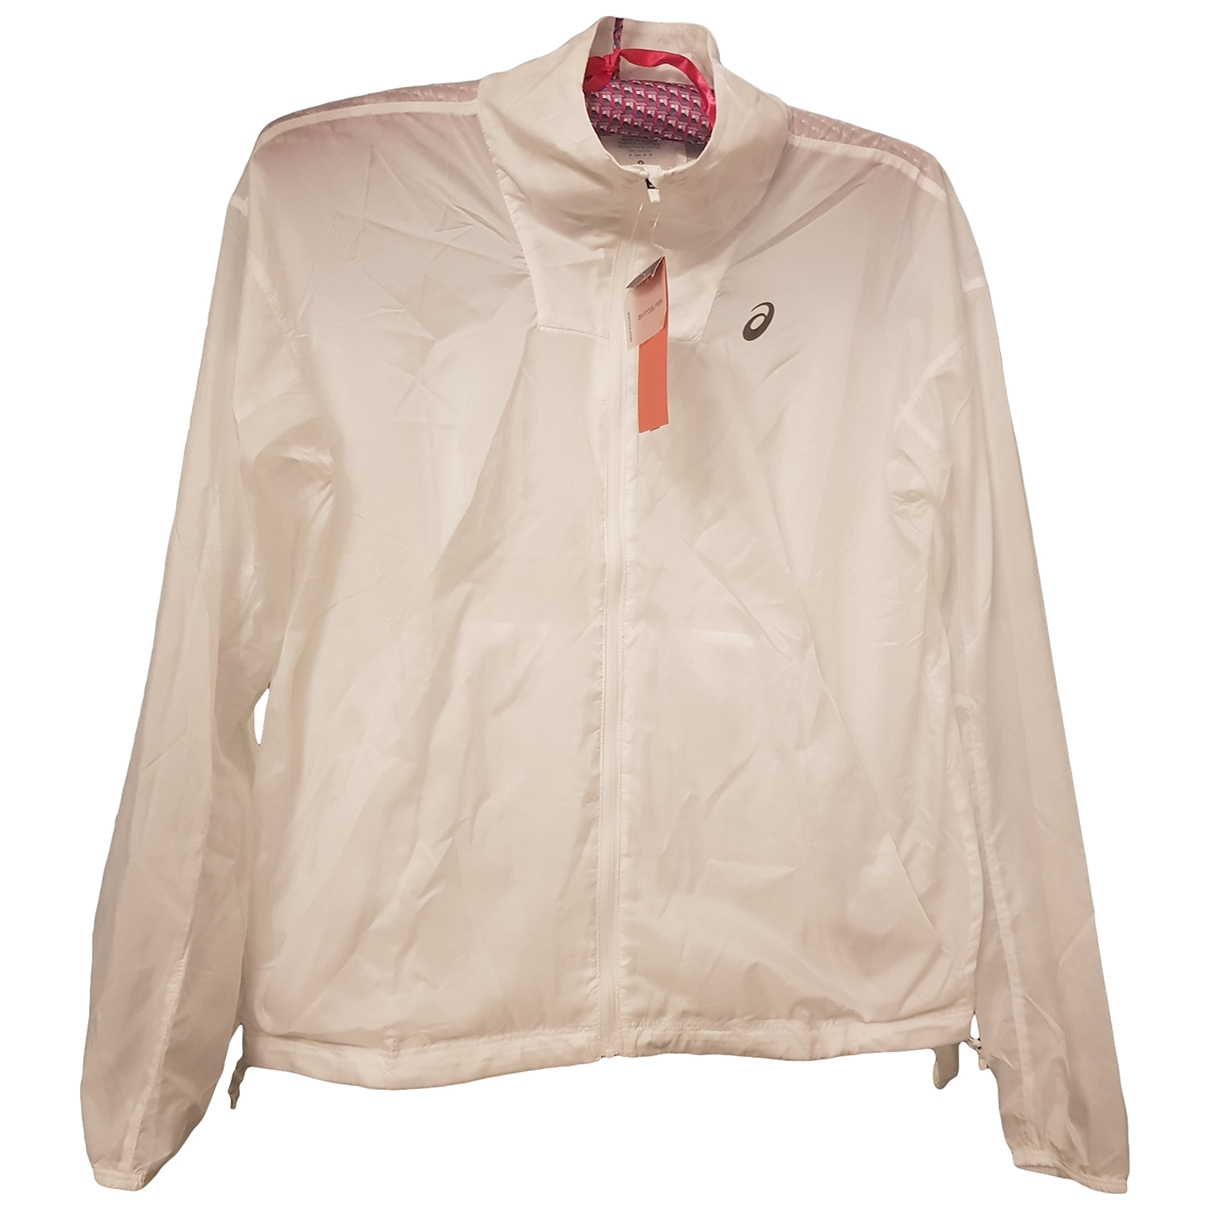 Asics \N Jacke in  Weiss Polyester